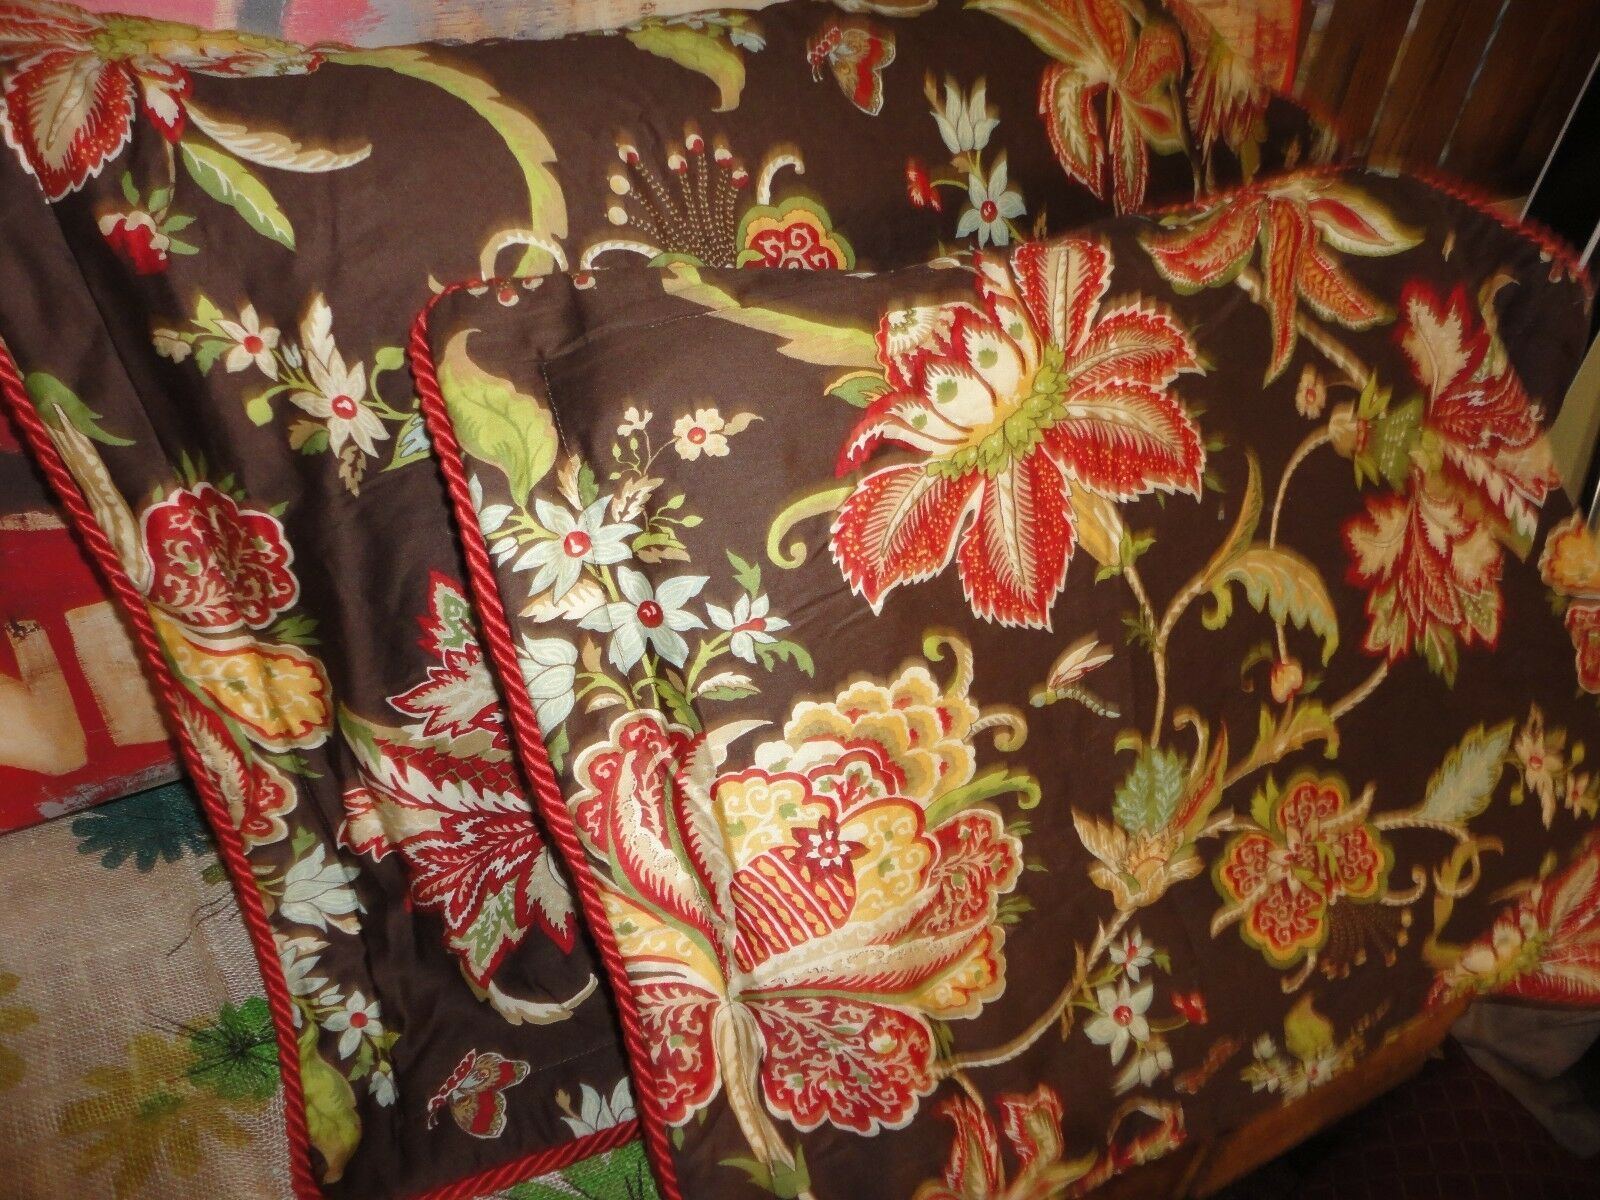 COTE COUTURE pink TREE BROWN RED FLORAL SATEEN (PAIR) KING PILLOW SHAMS 20 X 36